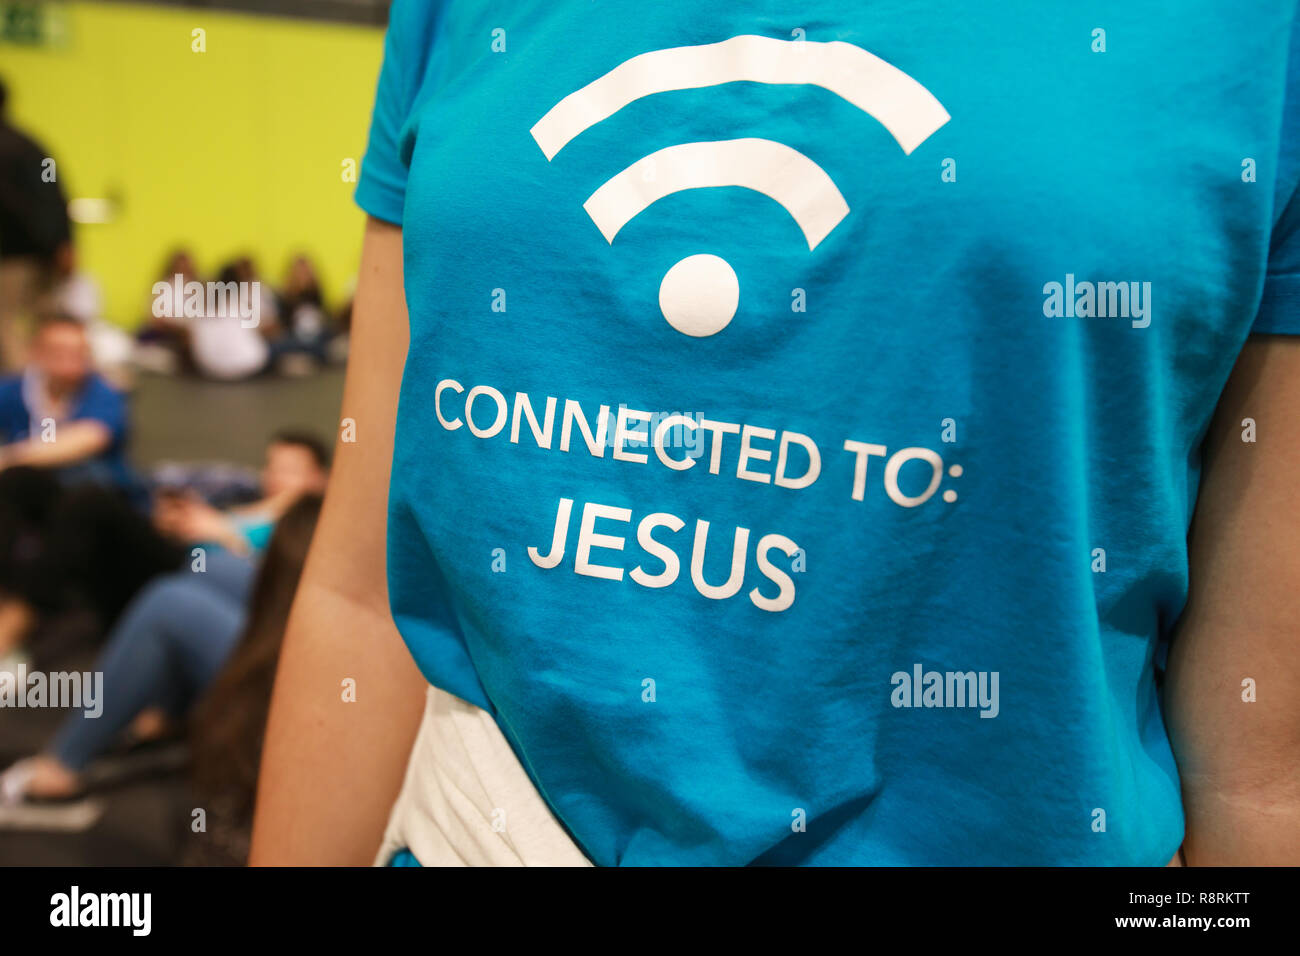 Connected to Jesus written on t-shirt. - Stock Image